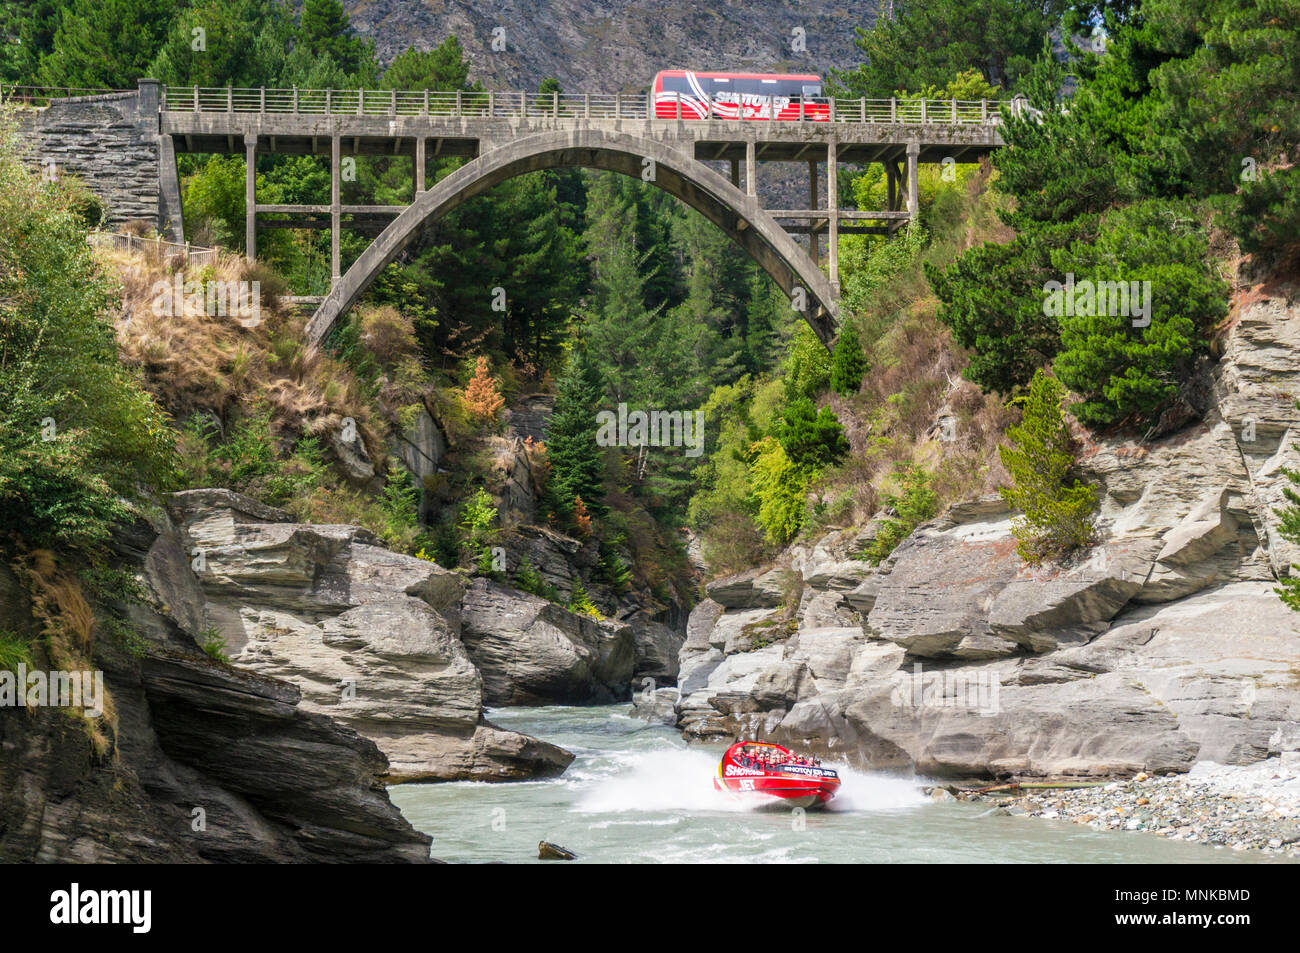 New Zealand queenstown New Zealand South Island shotover jet boating on the shotover river near queenstown new zealand - Stock Image